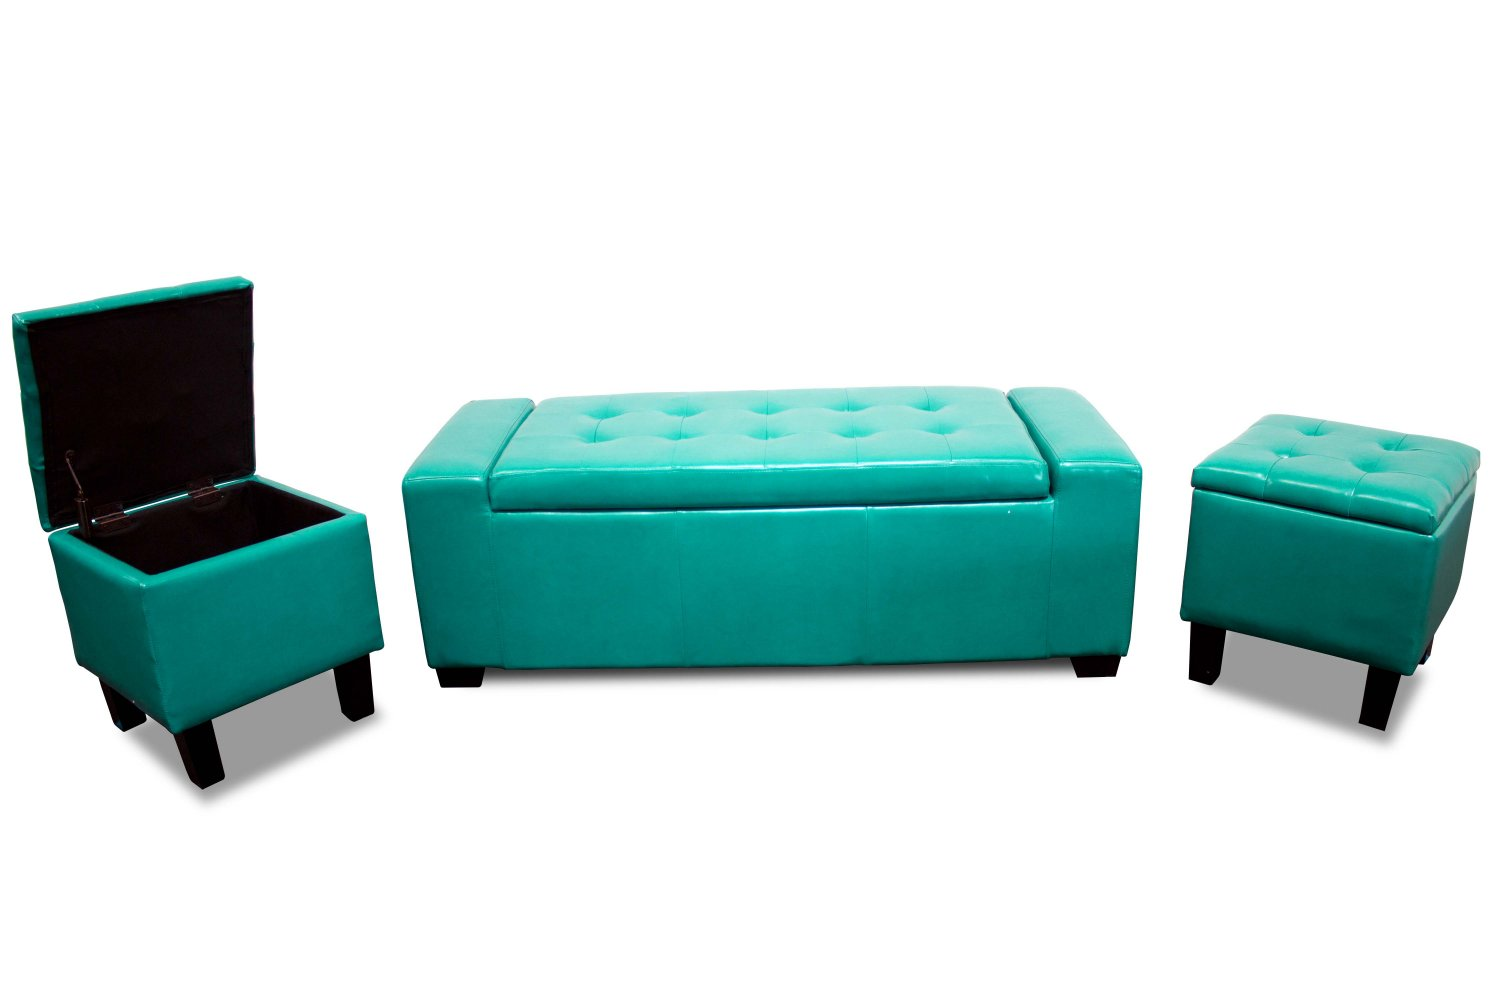 895 Newport Sea Green 3 Pcs Storage Bench Storage Stools